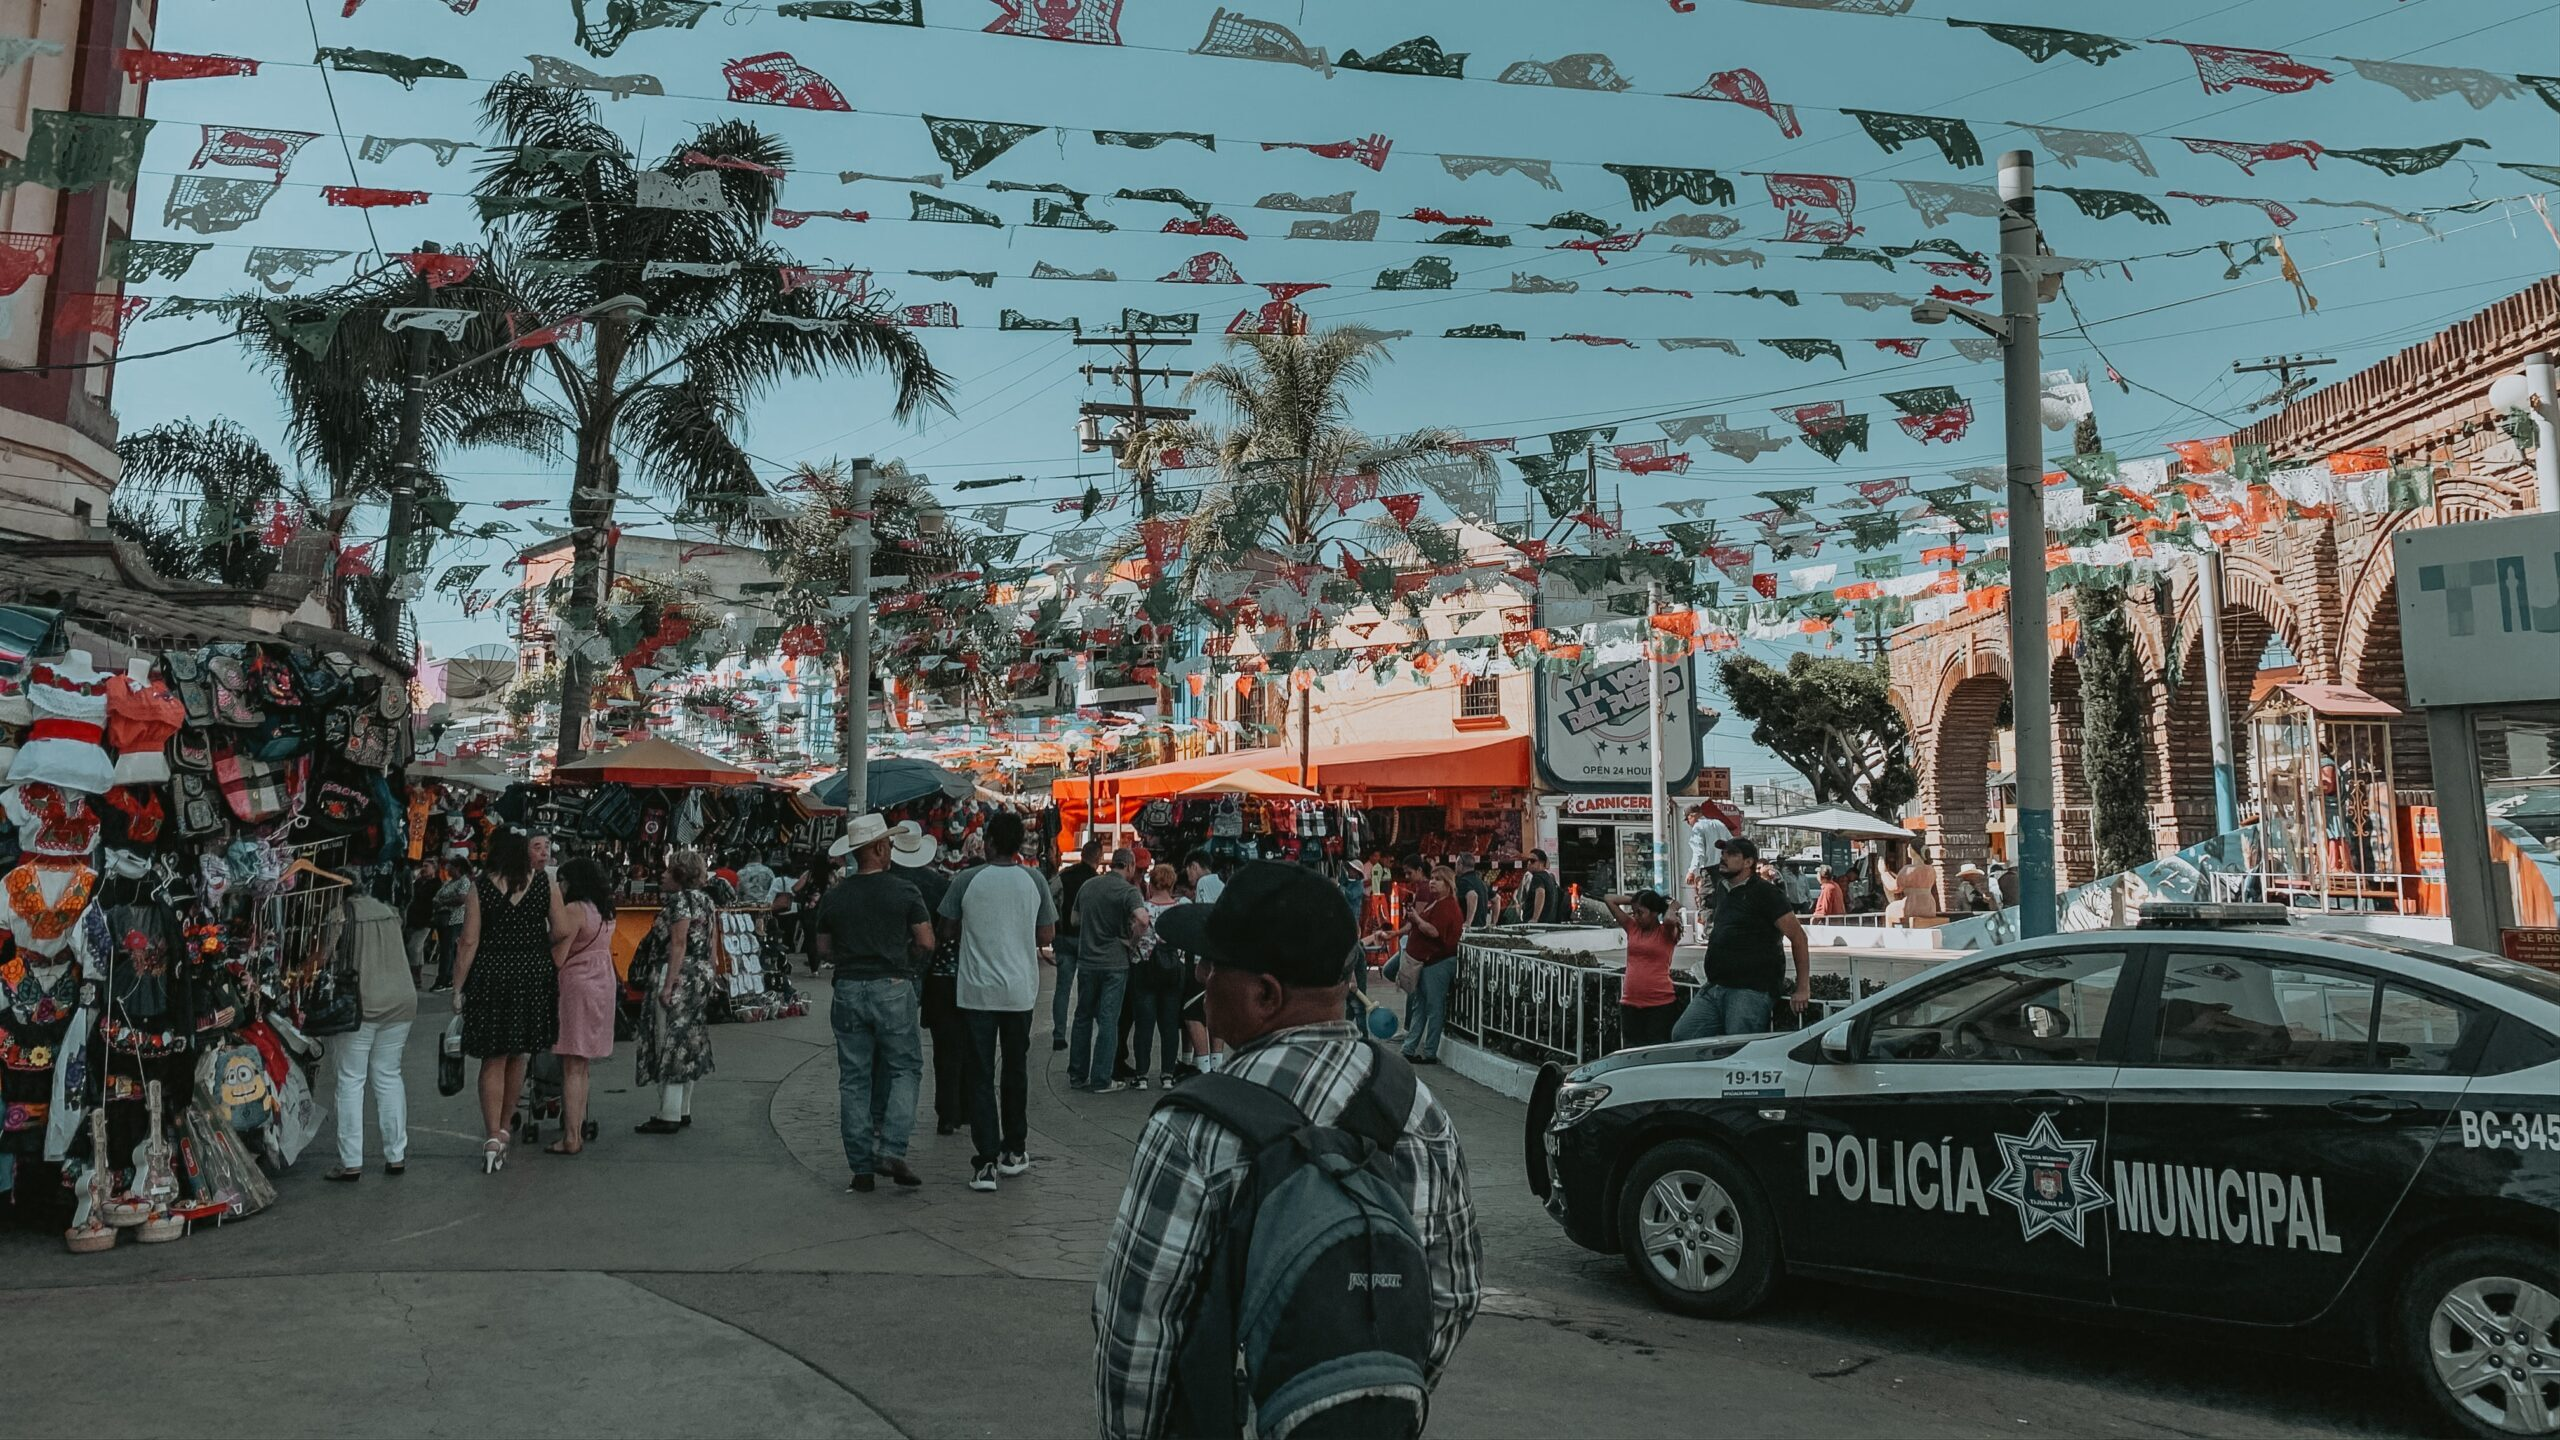 Order Amid Chaos: The Life Of A Mexican Police Officer